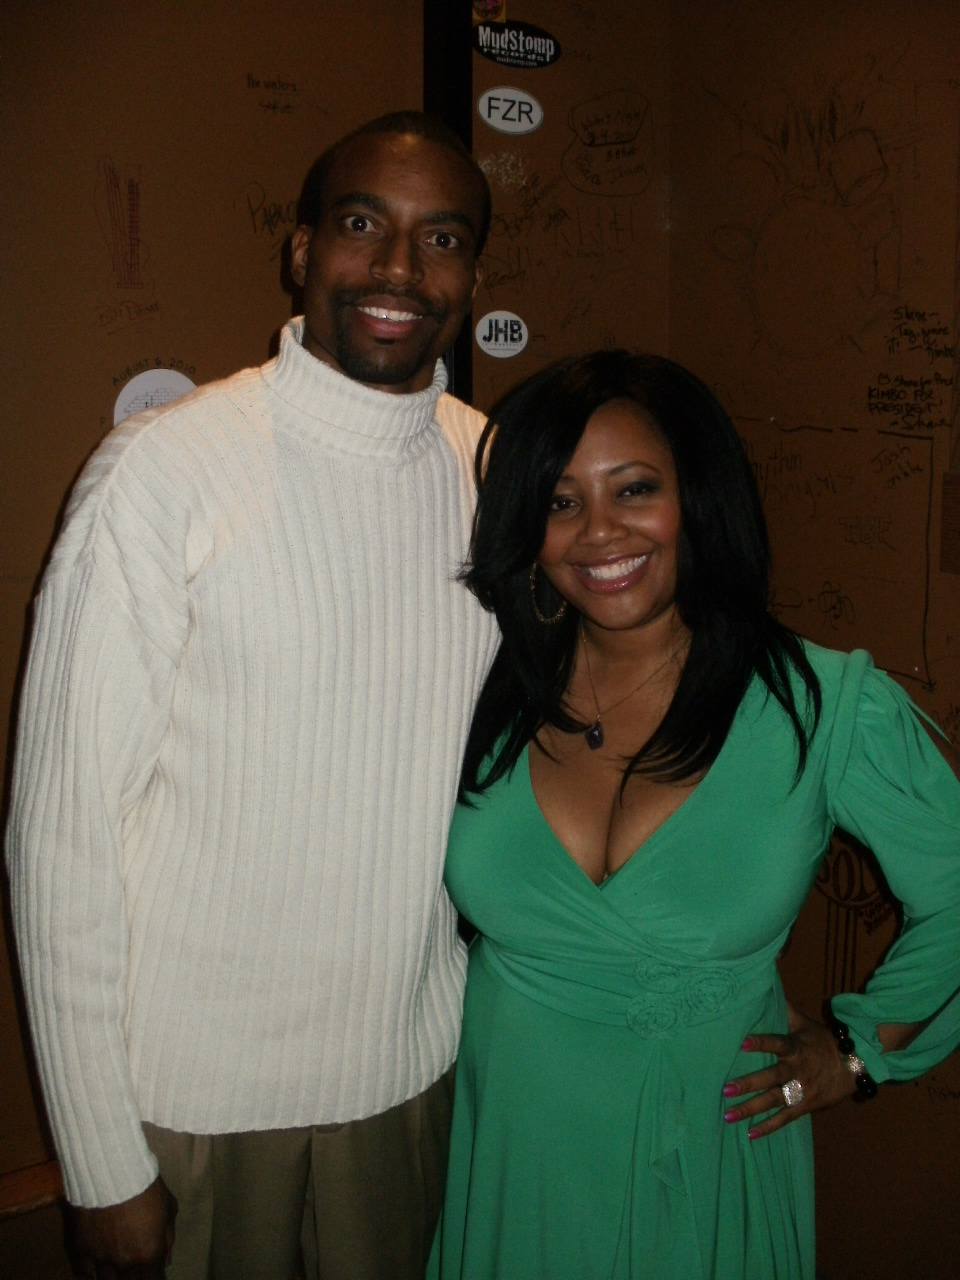 Lalah Hathaway at The Compound Grill. January 2012.